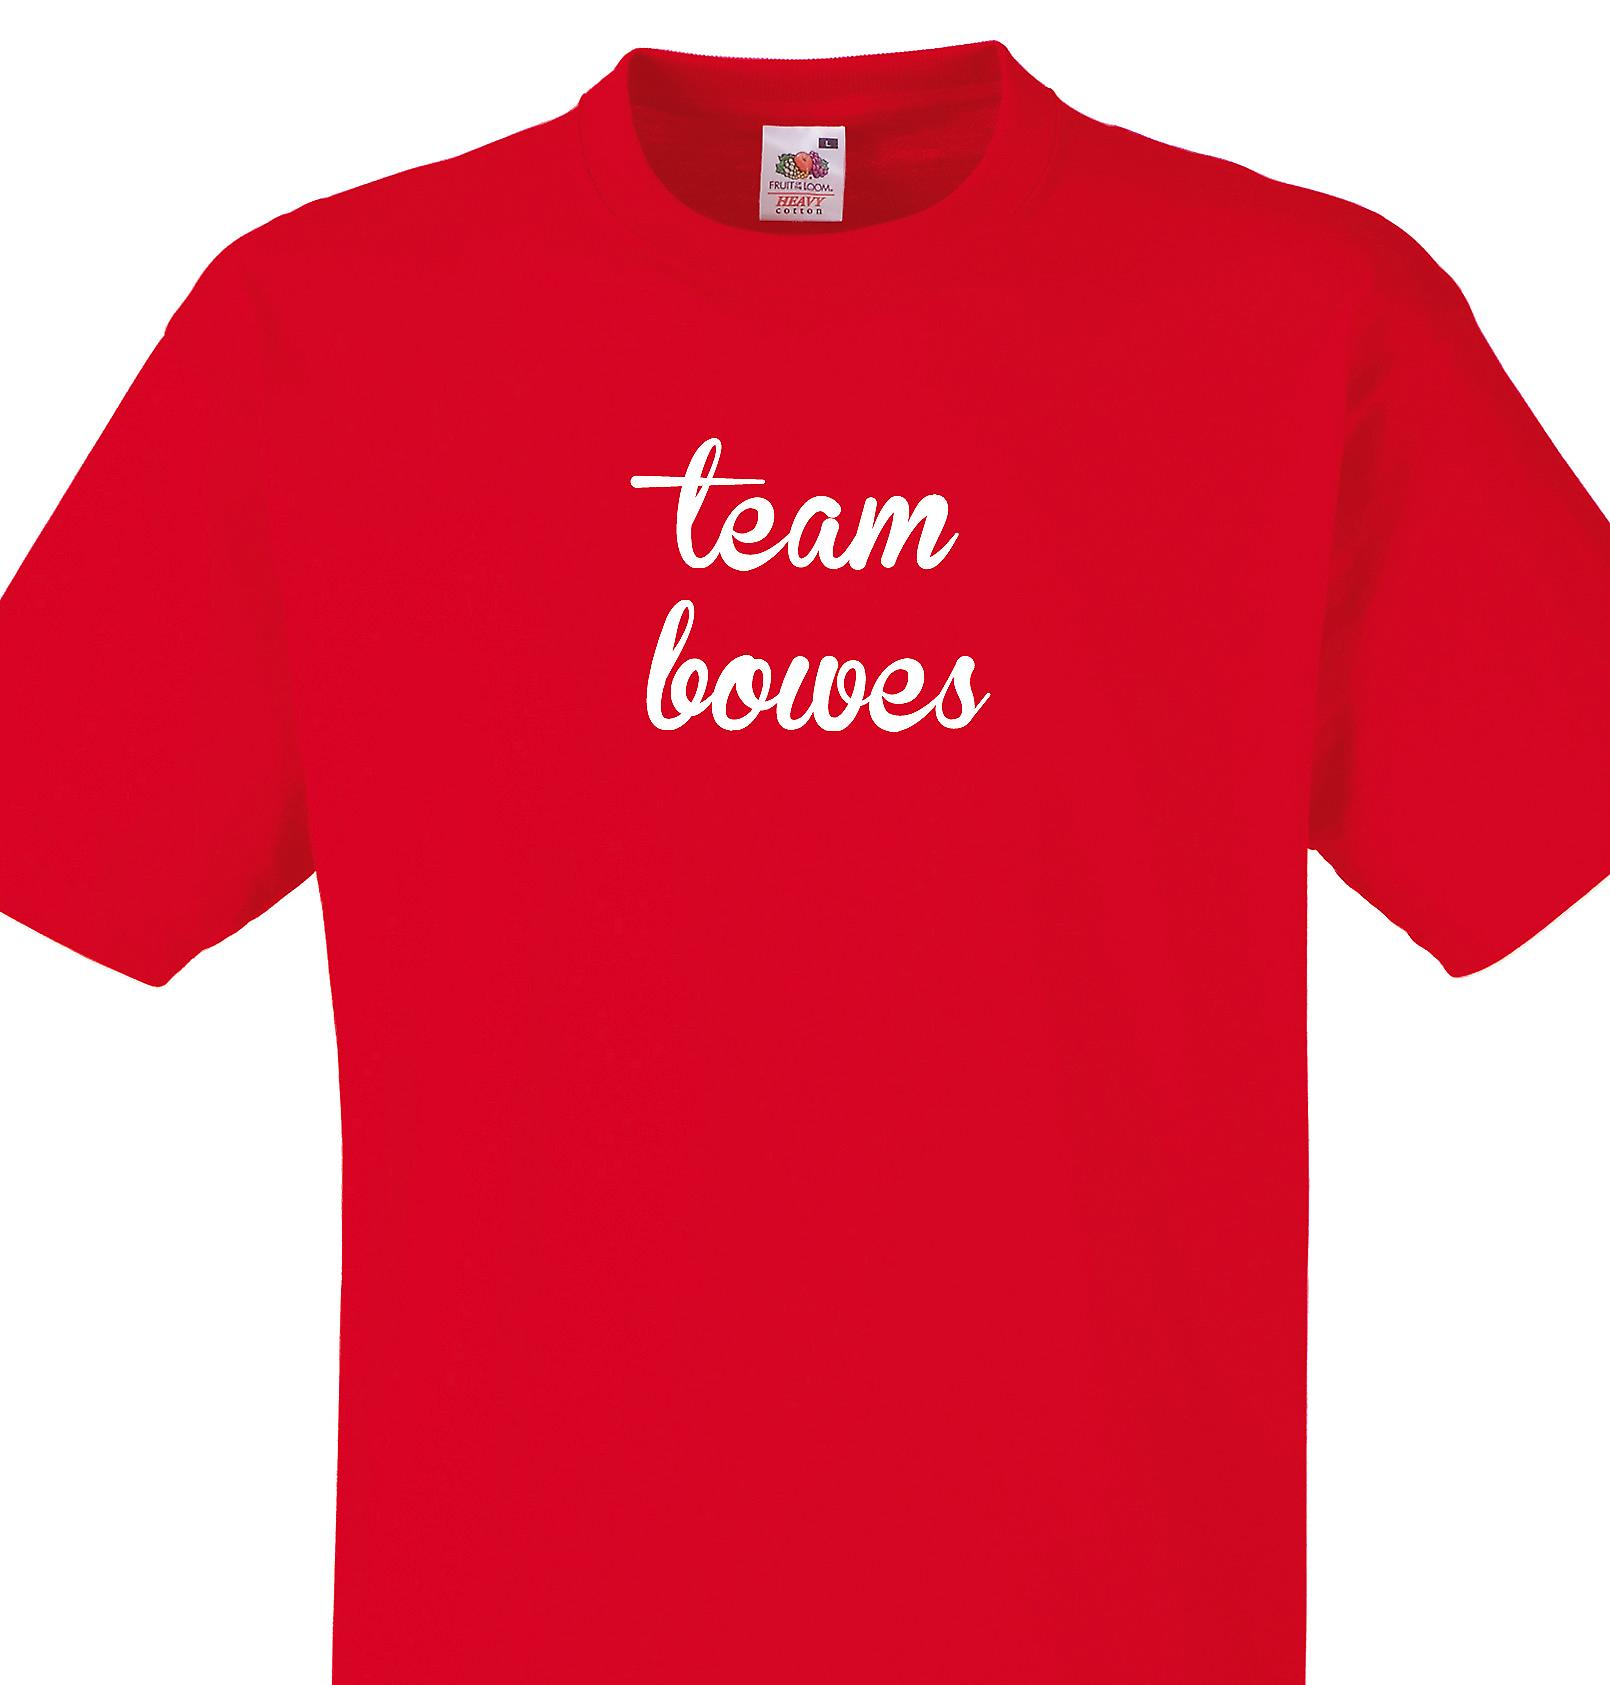 Team Bowes Red T shirt